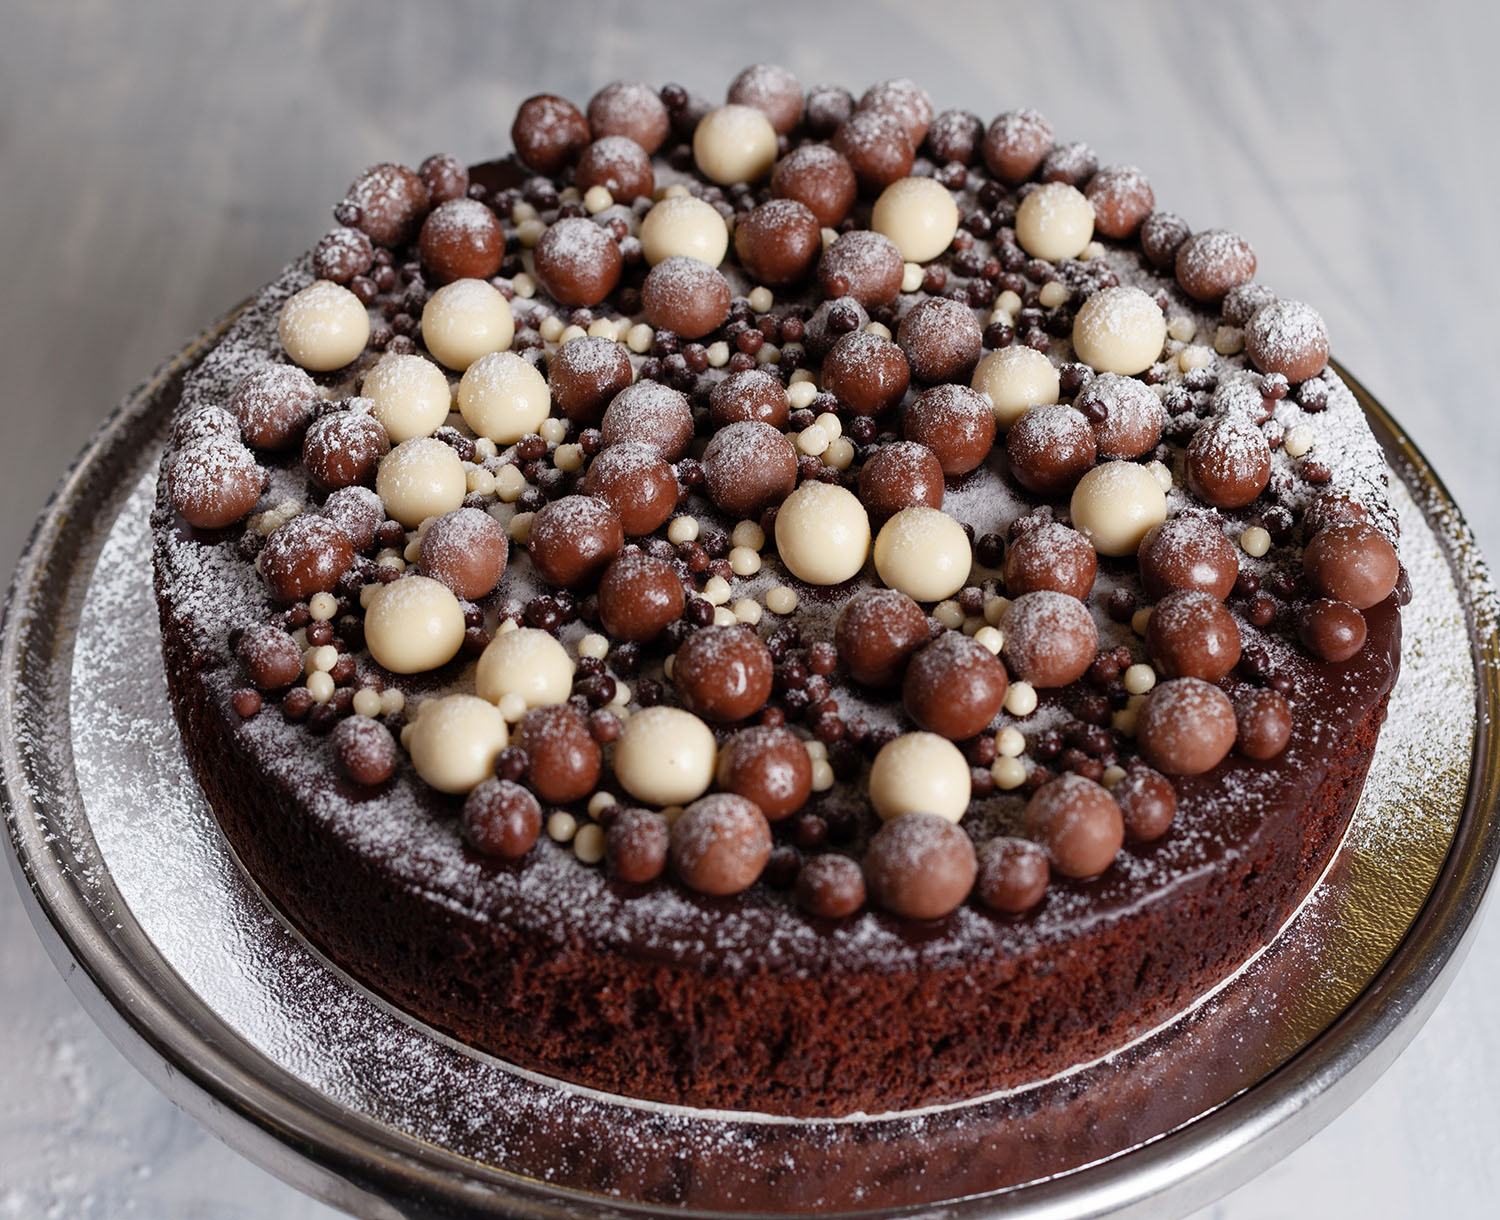 Baked Chocolate Fudge Cake Topped with Chocolate Ganache and Maltesers